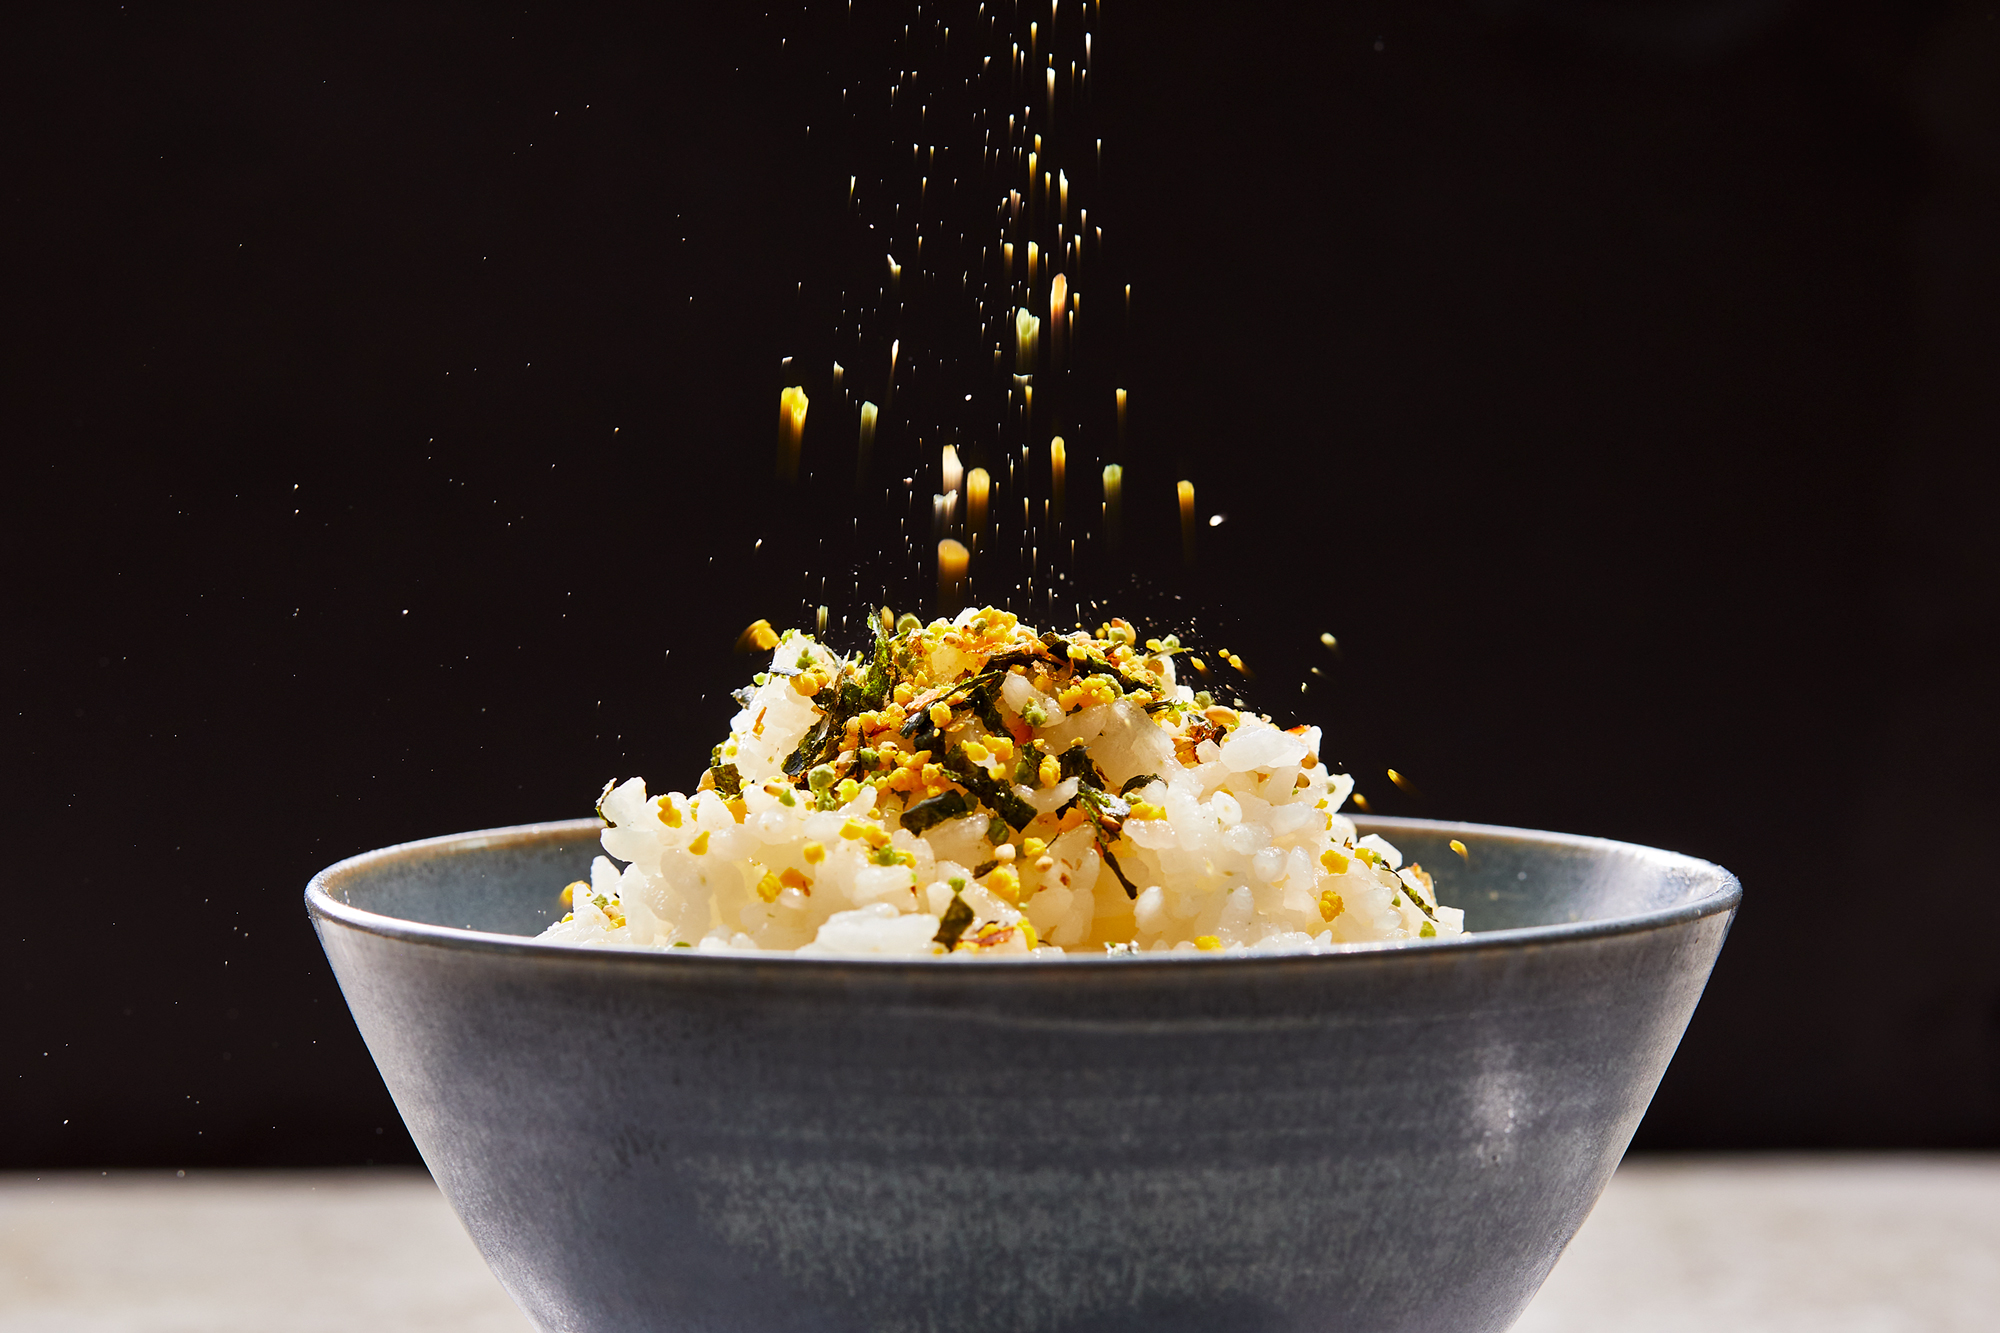 Furikake sprinkling onto rice